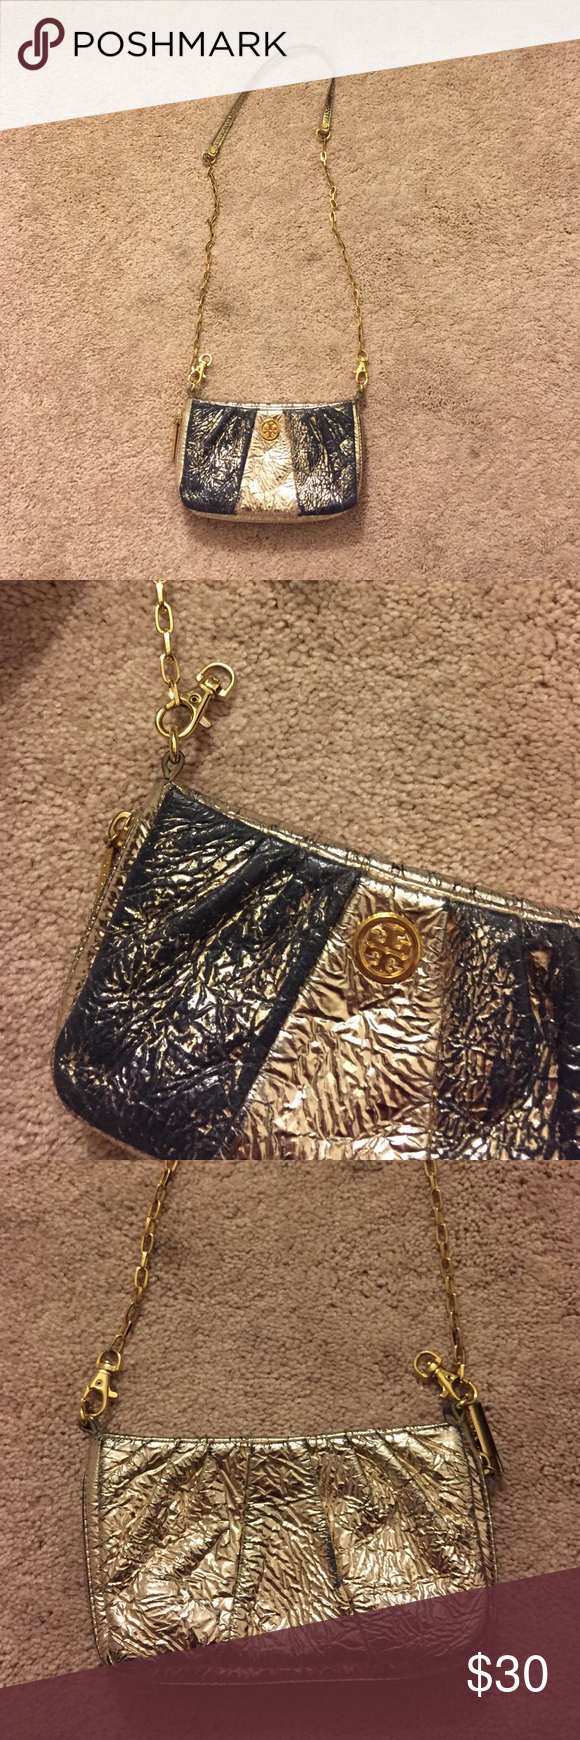 8fb0fc792224 Tory Burch Crossbody Authentic. Used condition. The front gold has ...